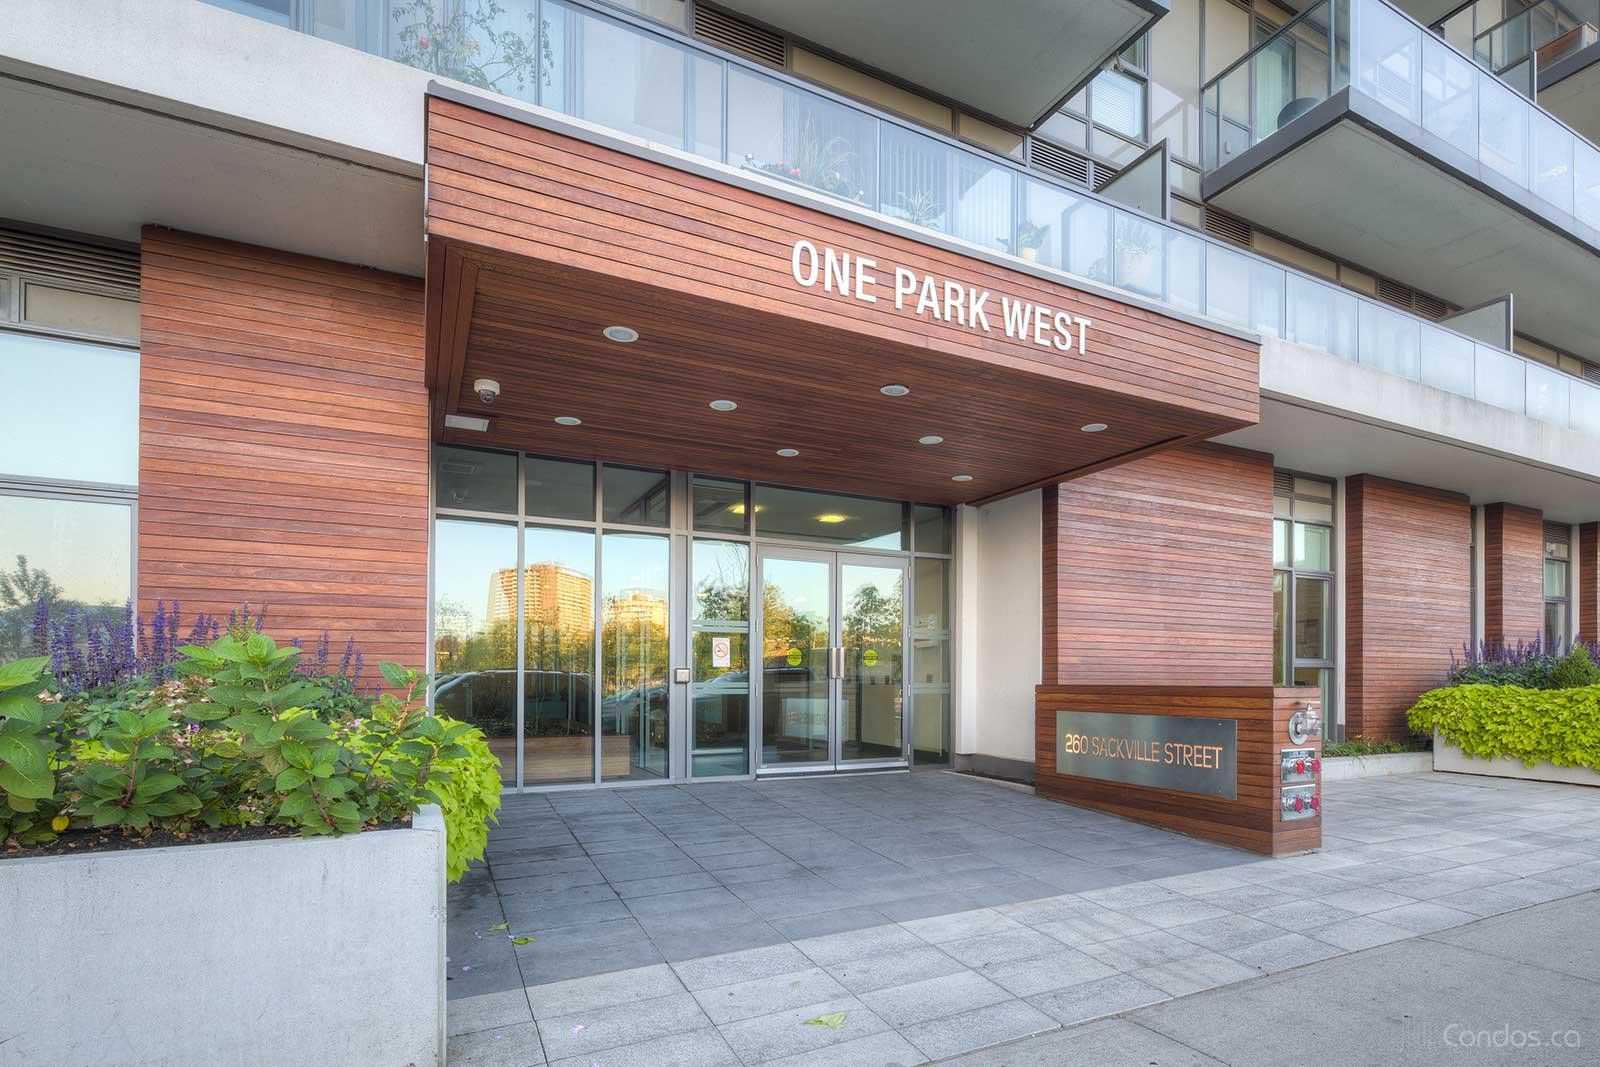 One Park West at 260 Sackville St, Toronto 0